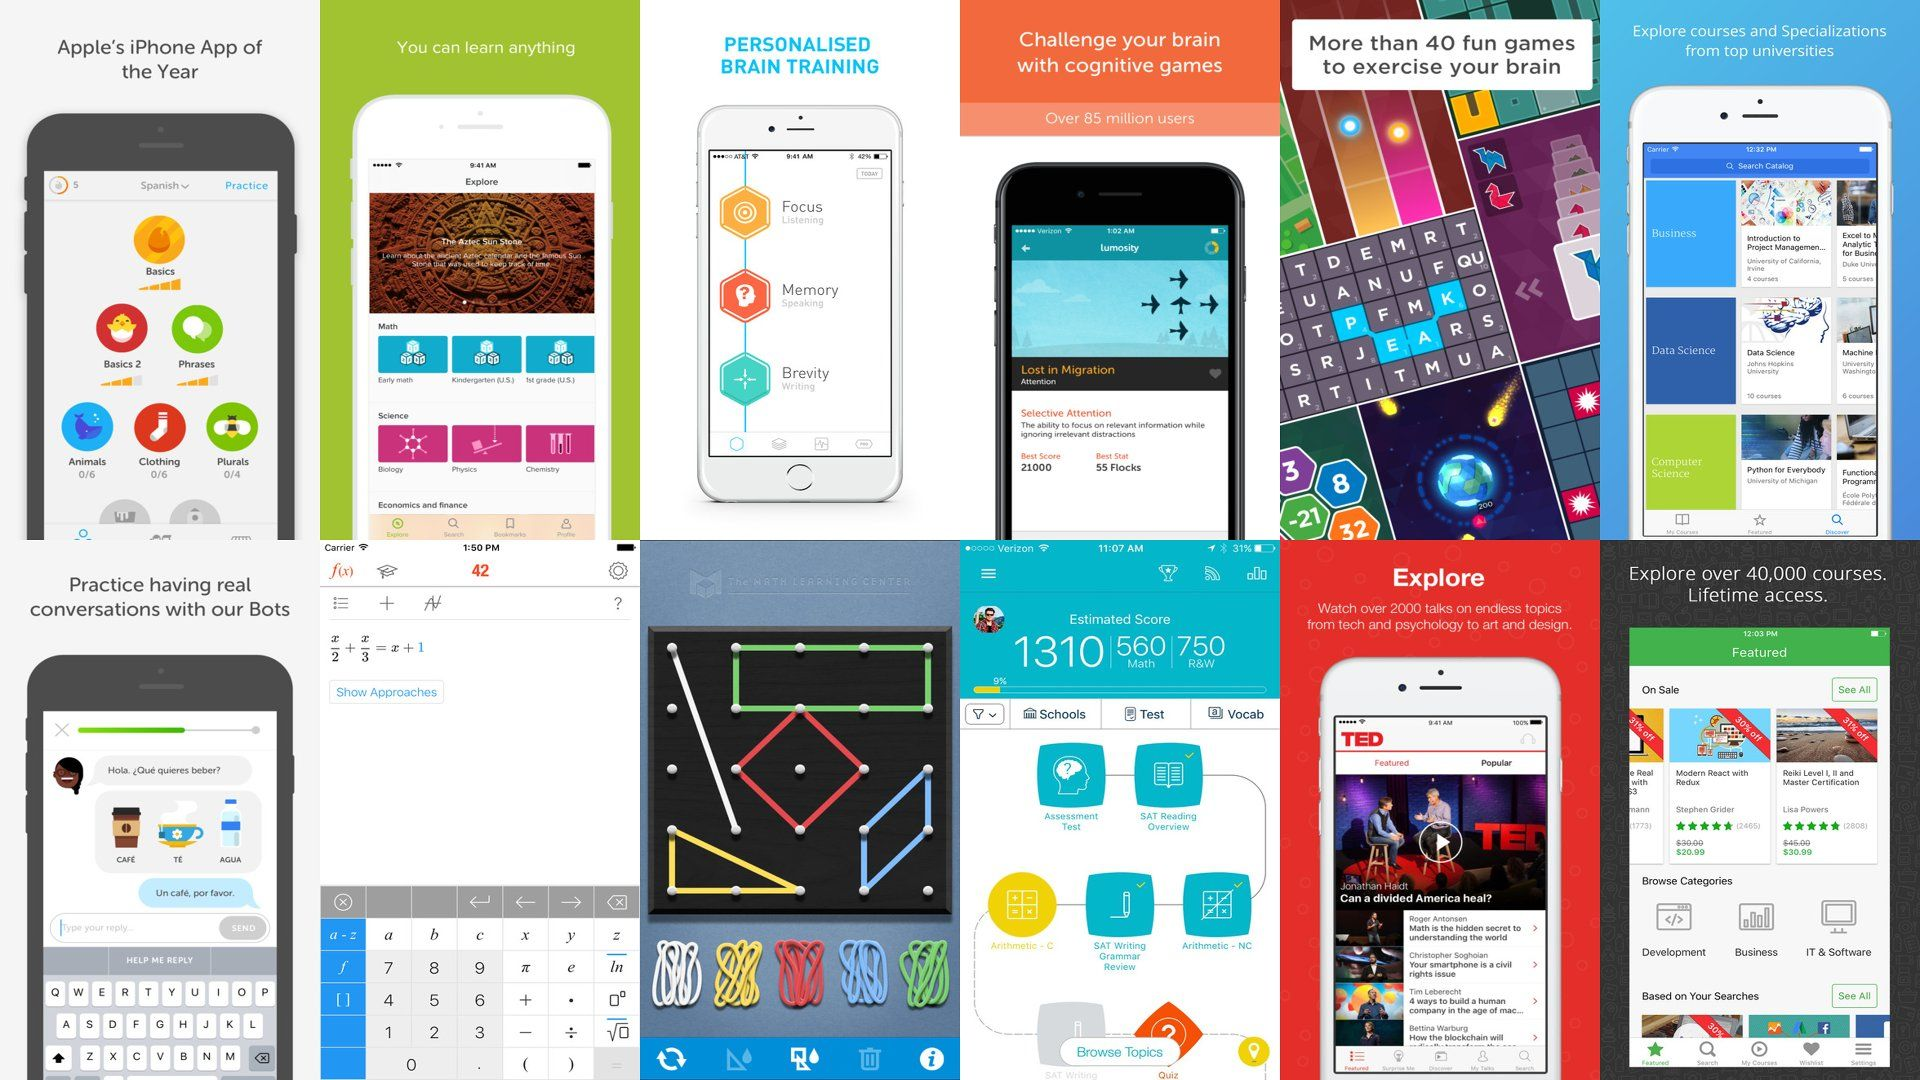 Best Education And Learning Apps For iOS (iPhone / iPad)